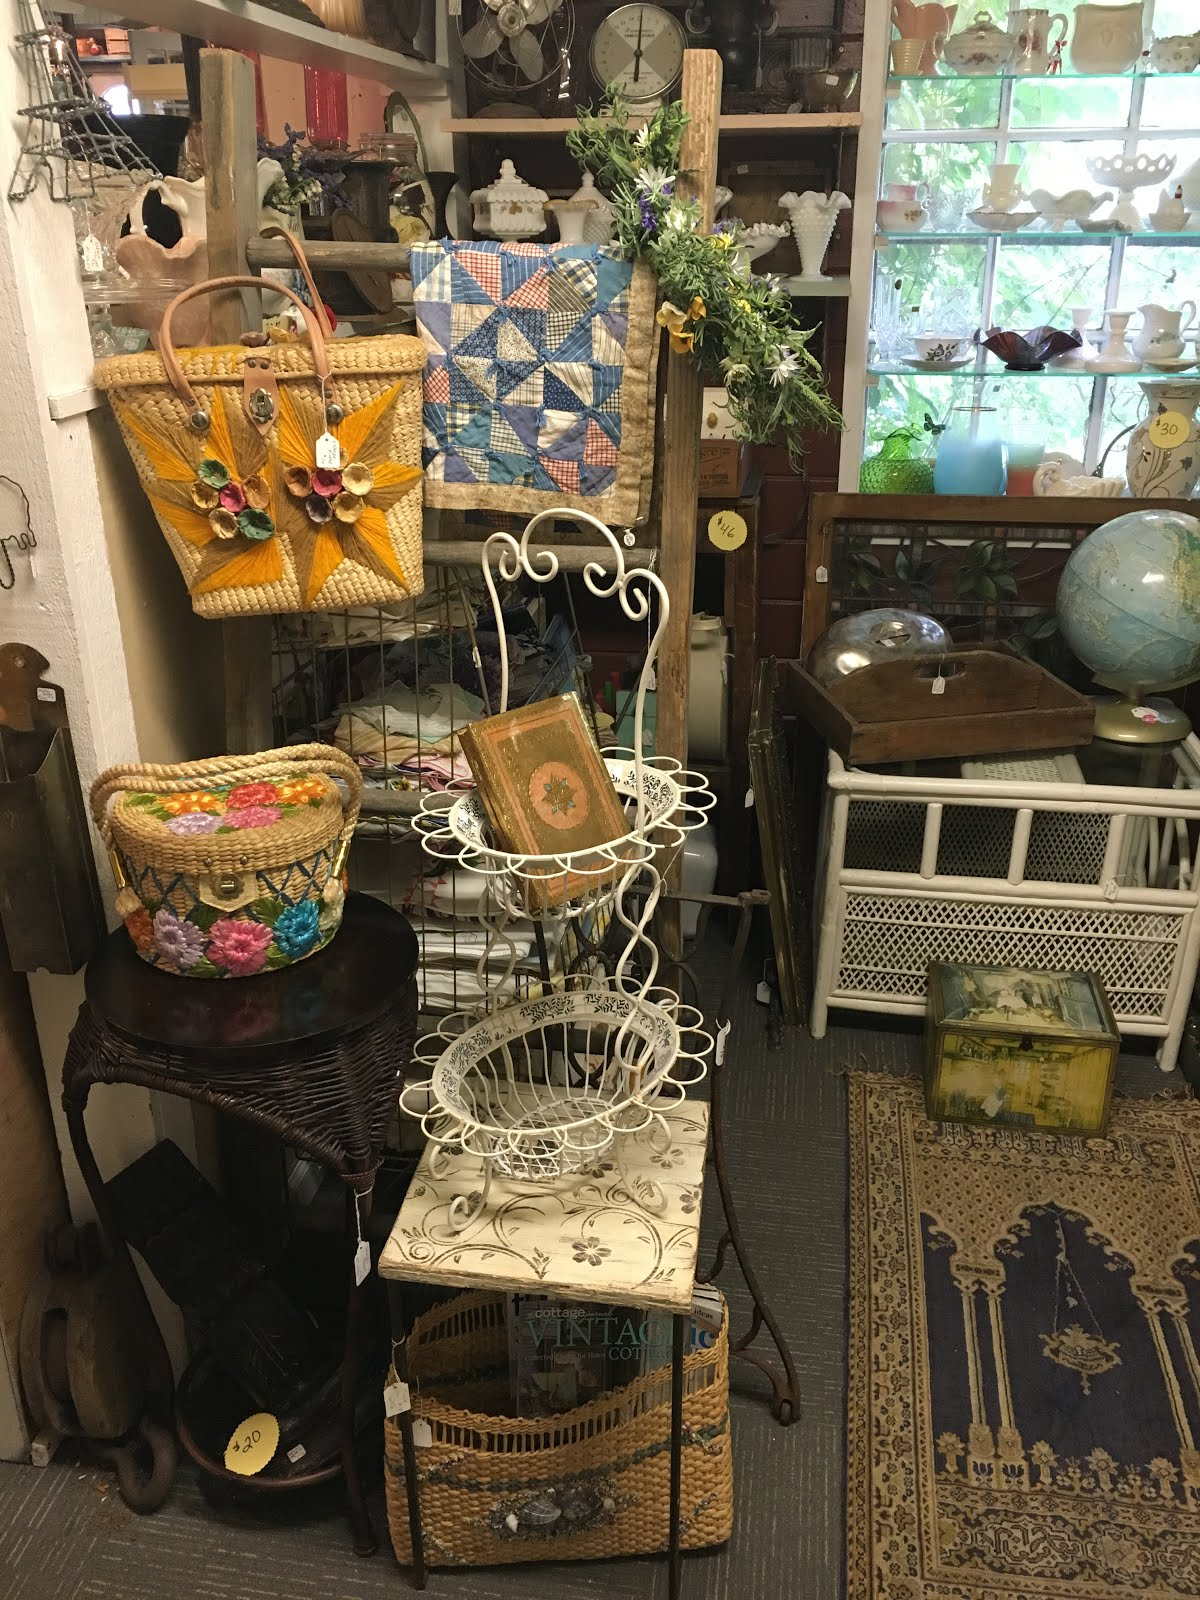 My Space at Carriage House Antiques